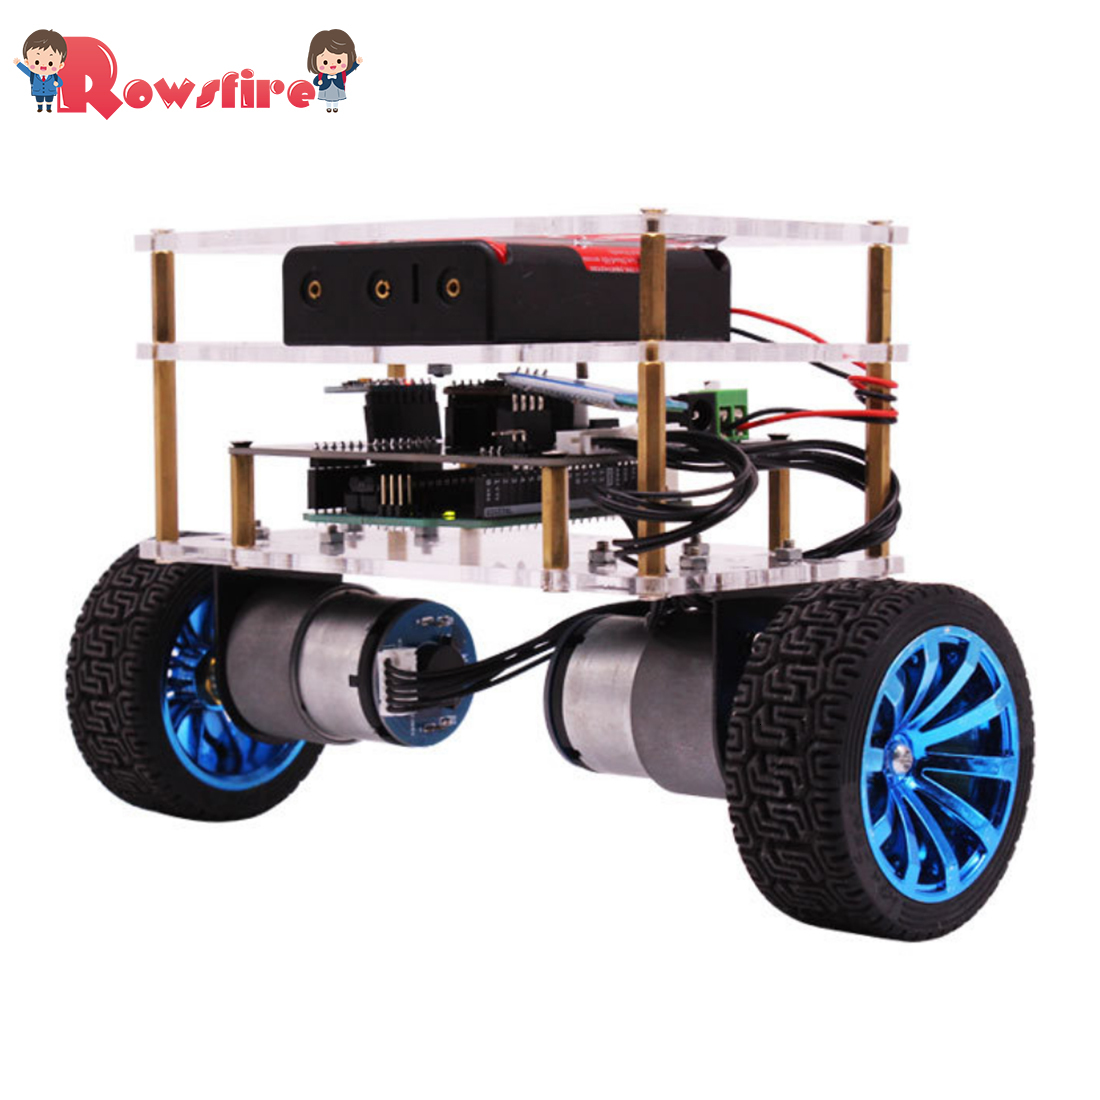 Balance Robot Car Compatible With Arduino Electronics Programmable Kit Education Robotics Support C Language For Kids Adult